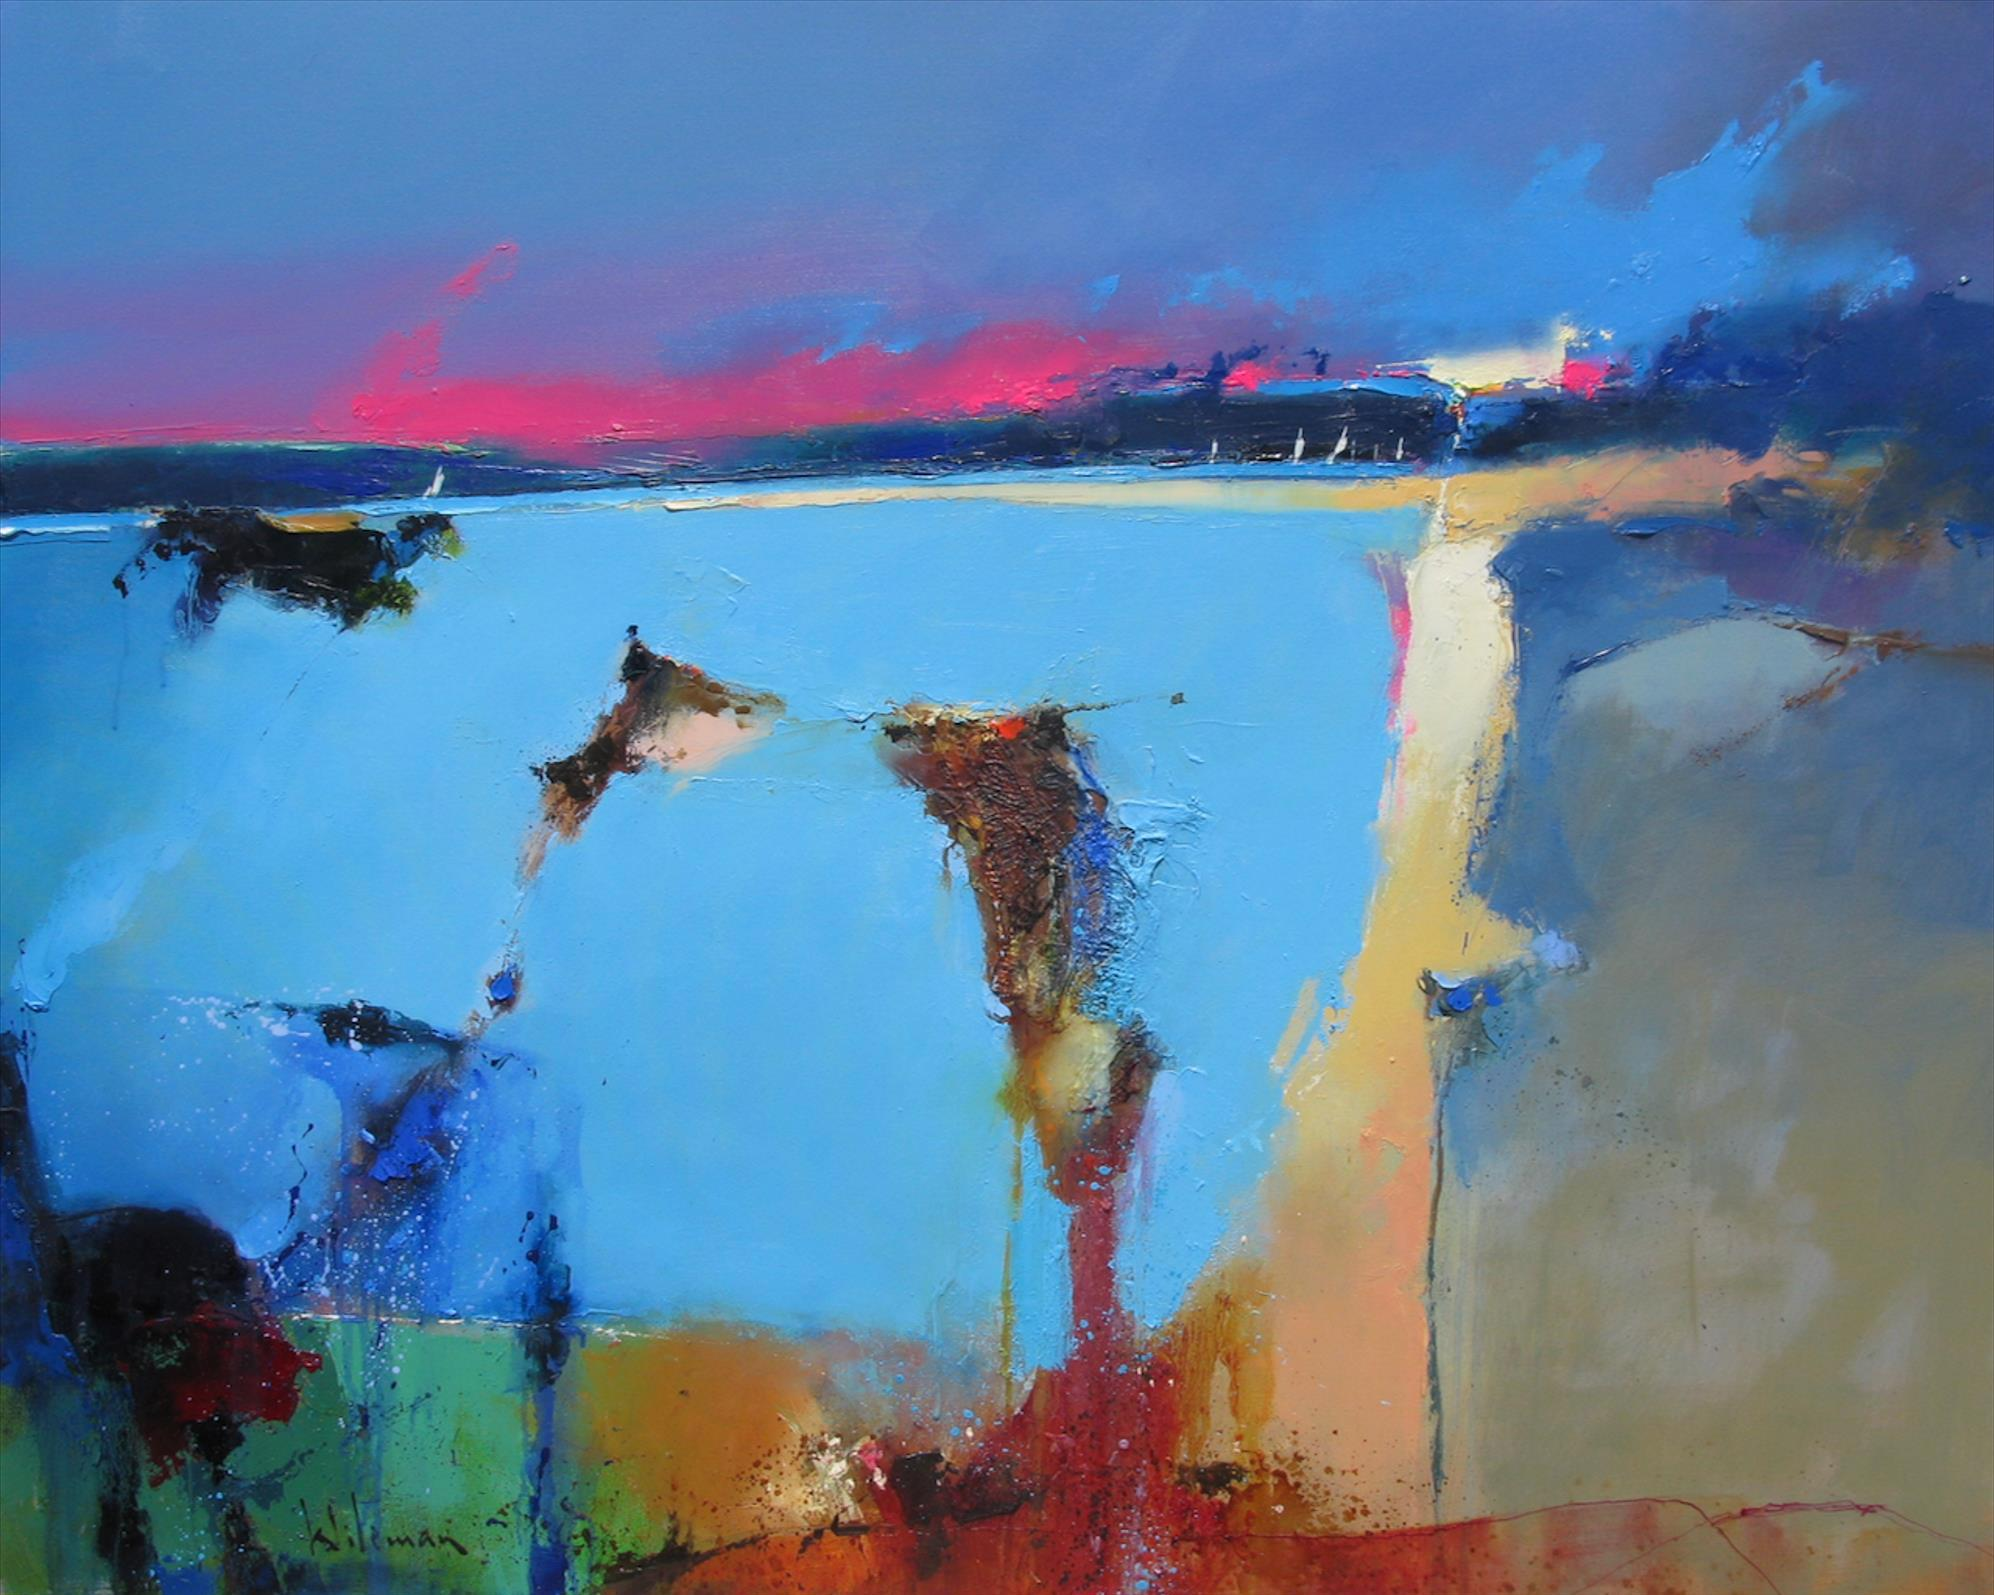 Peter Wileman's A Mile oF Warm Sea Scented Beach